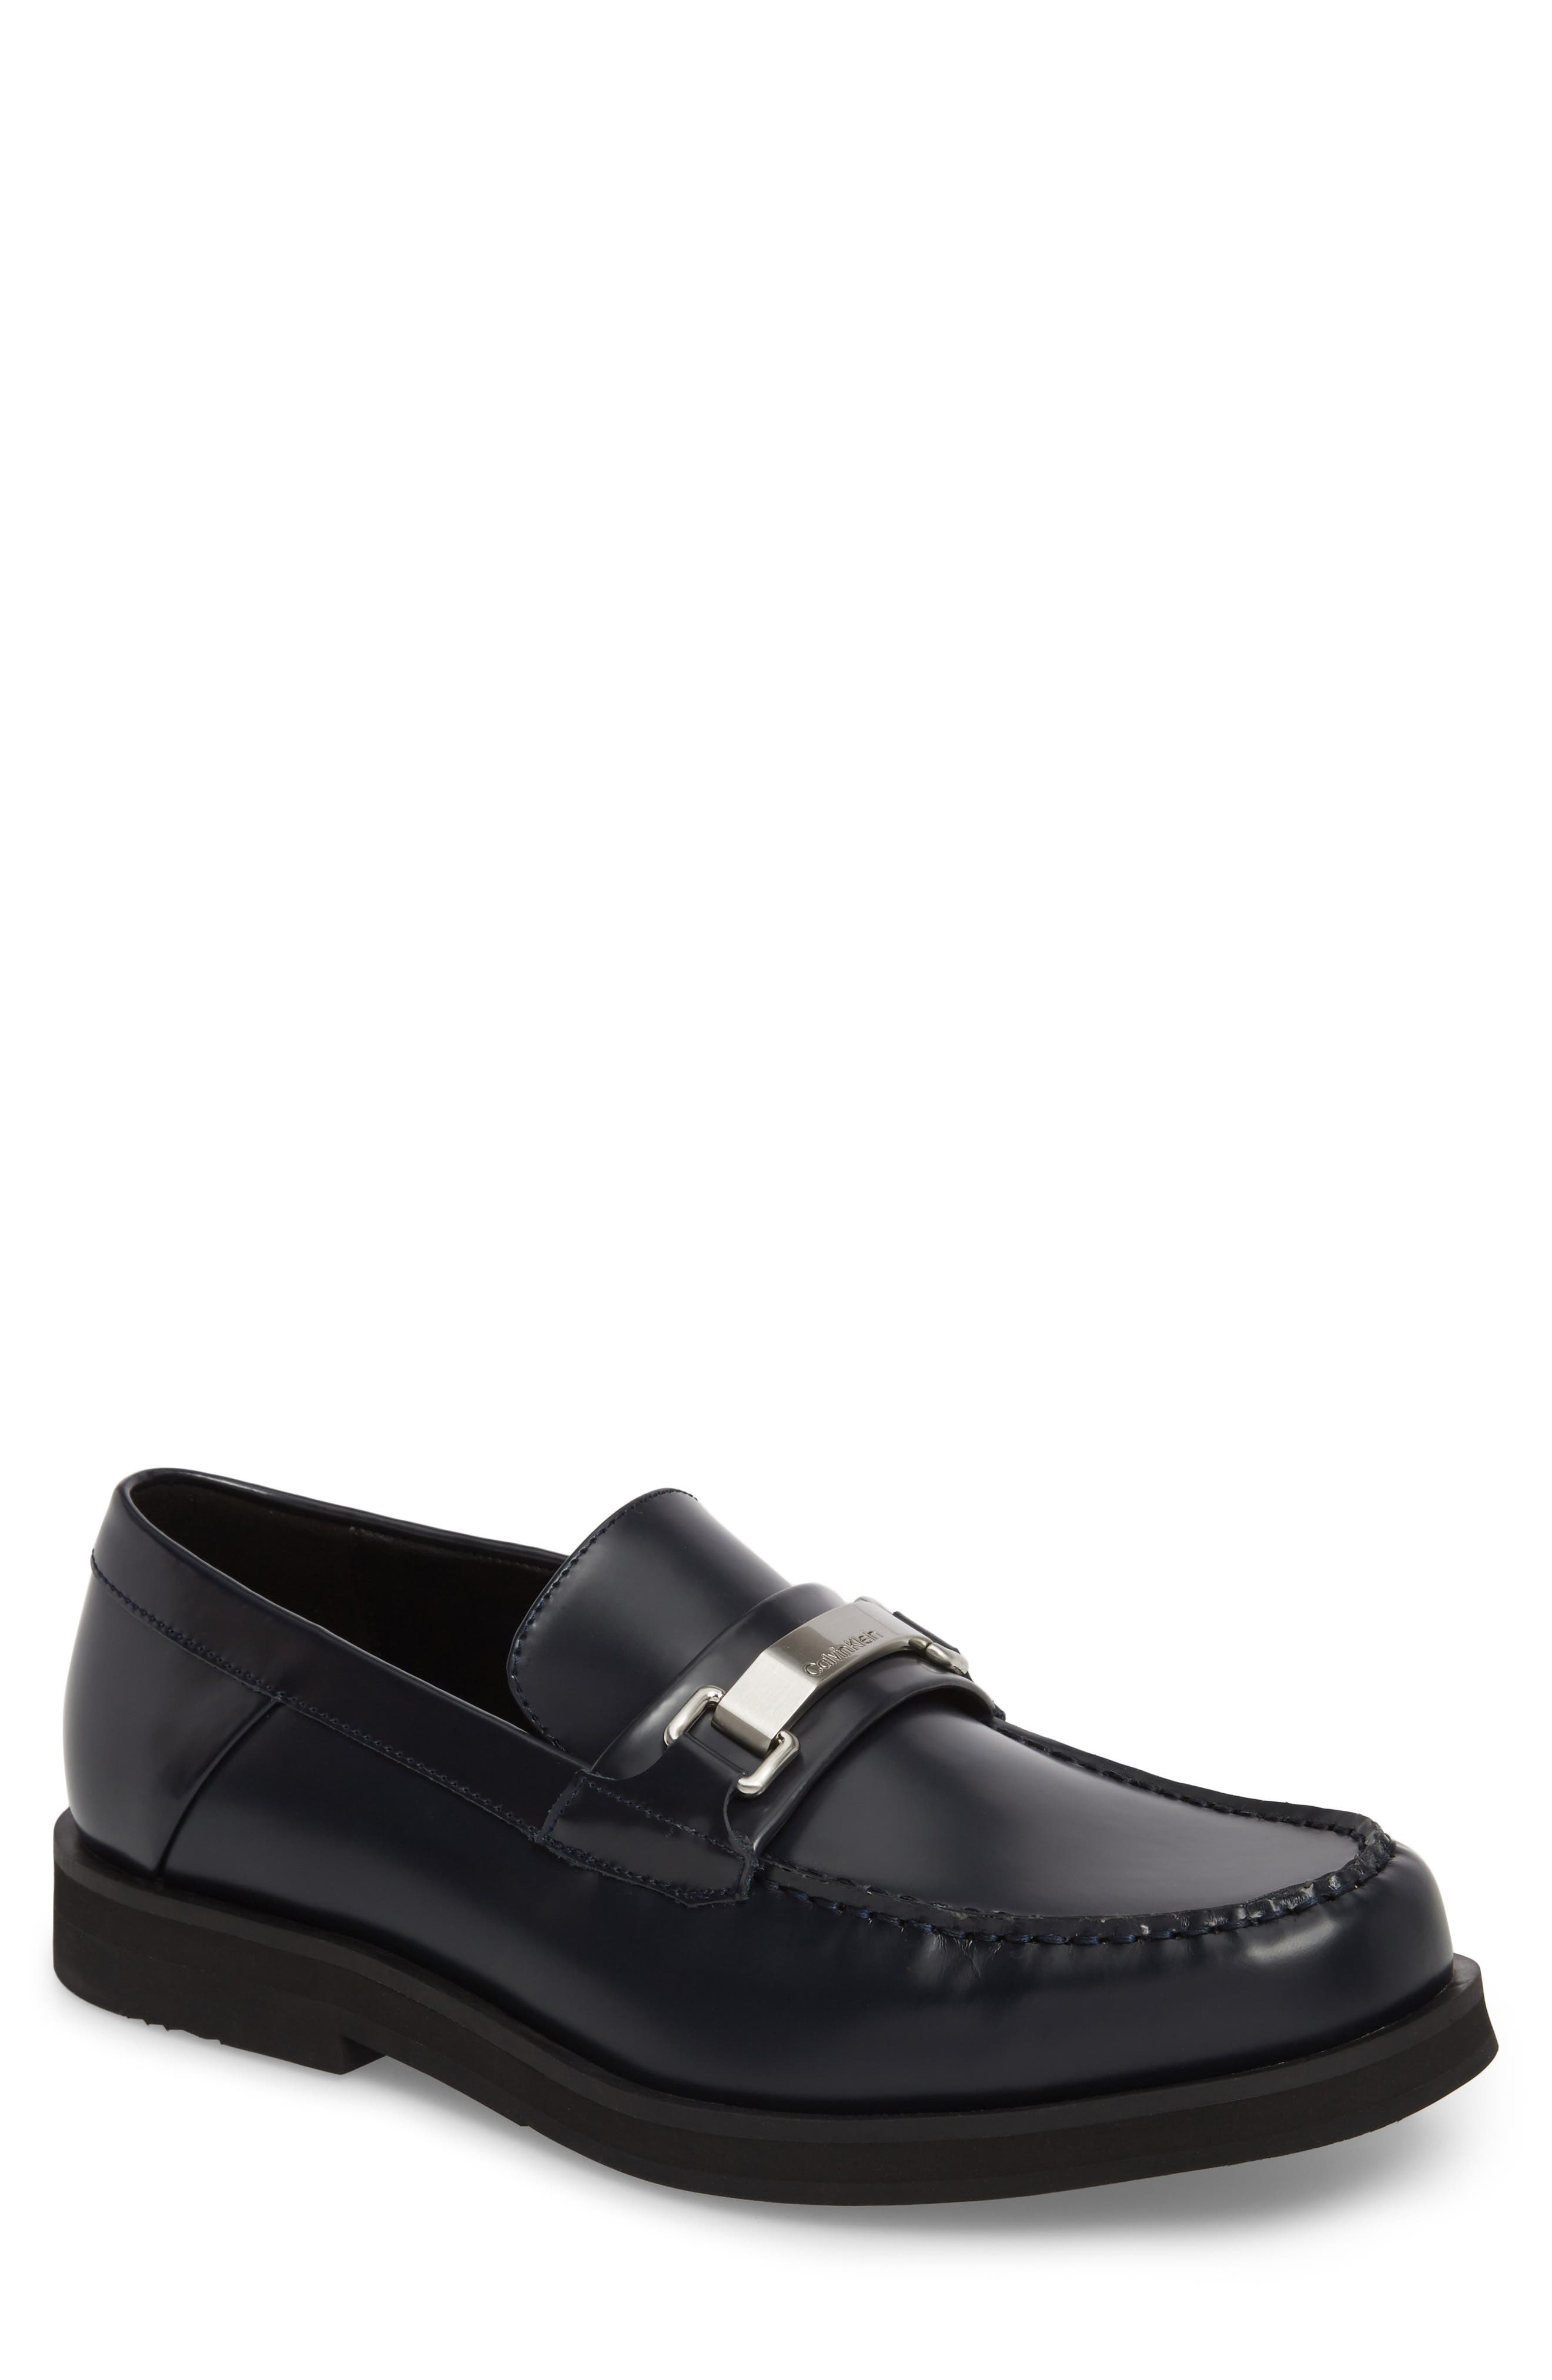 Lyric Box Bit Loafer,                             Main thumbnail 1, color,                             Dark Navy Leather